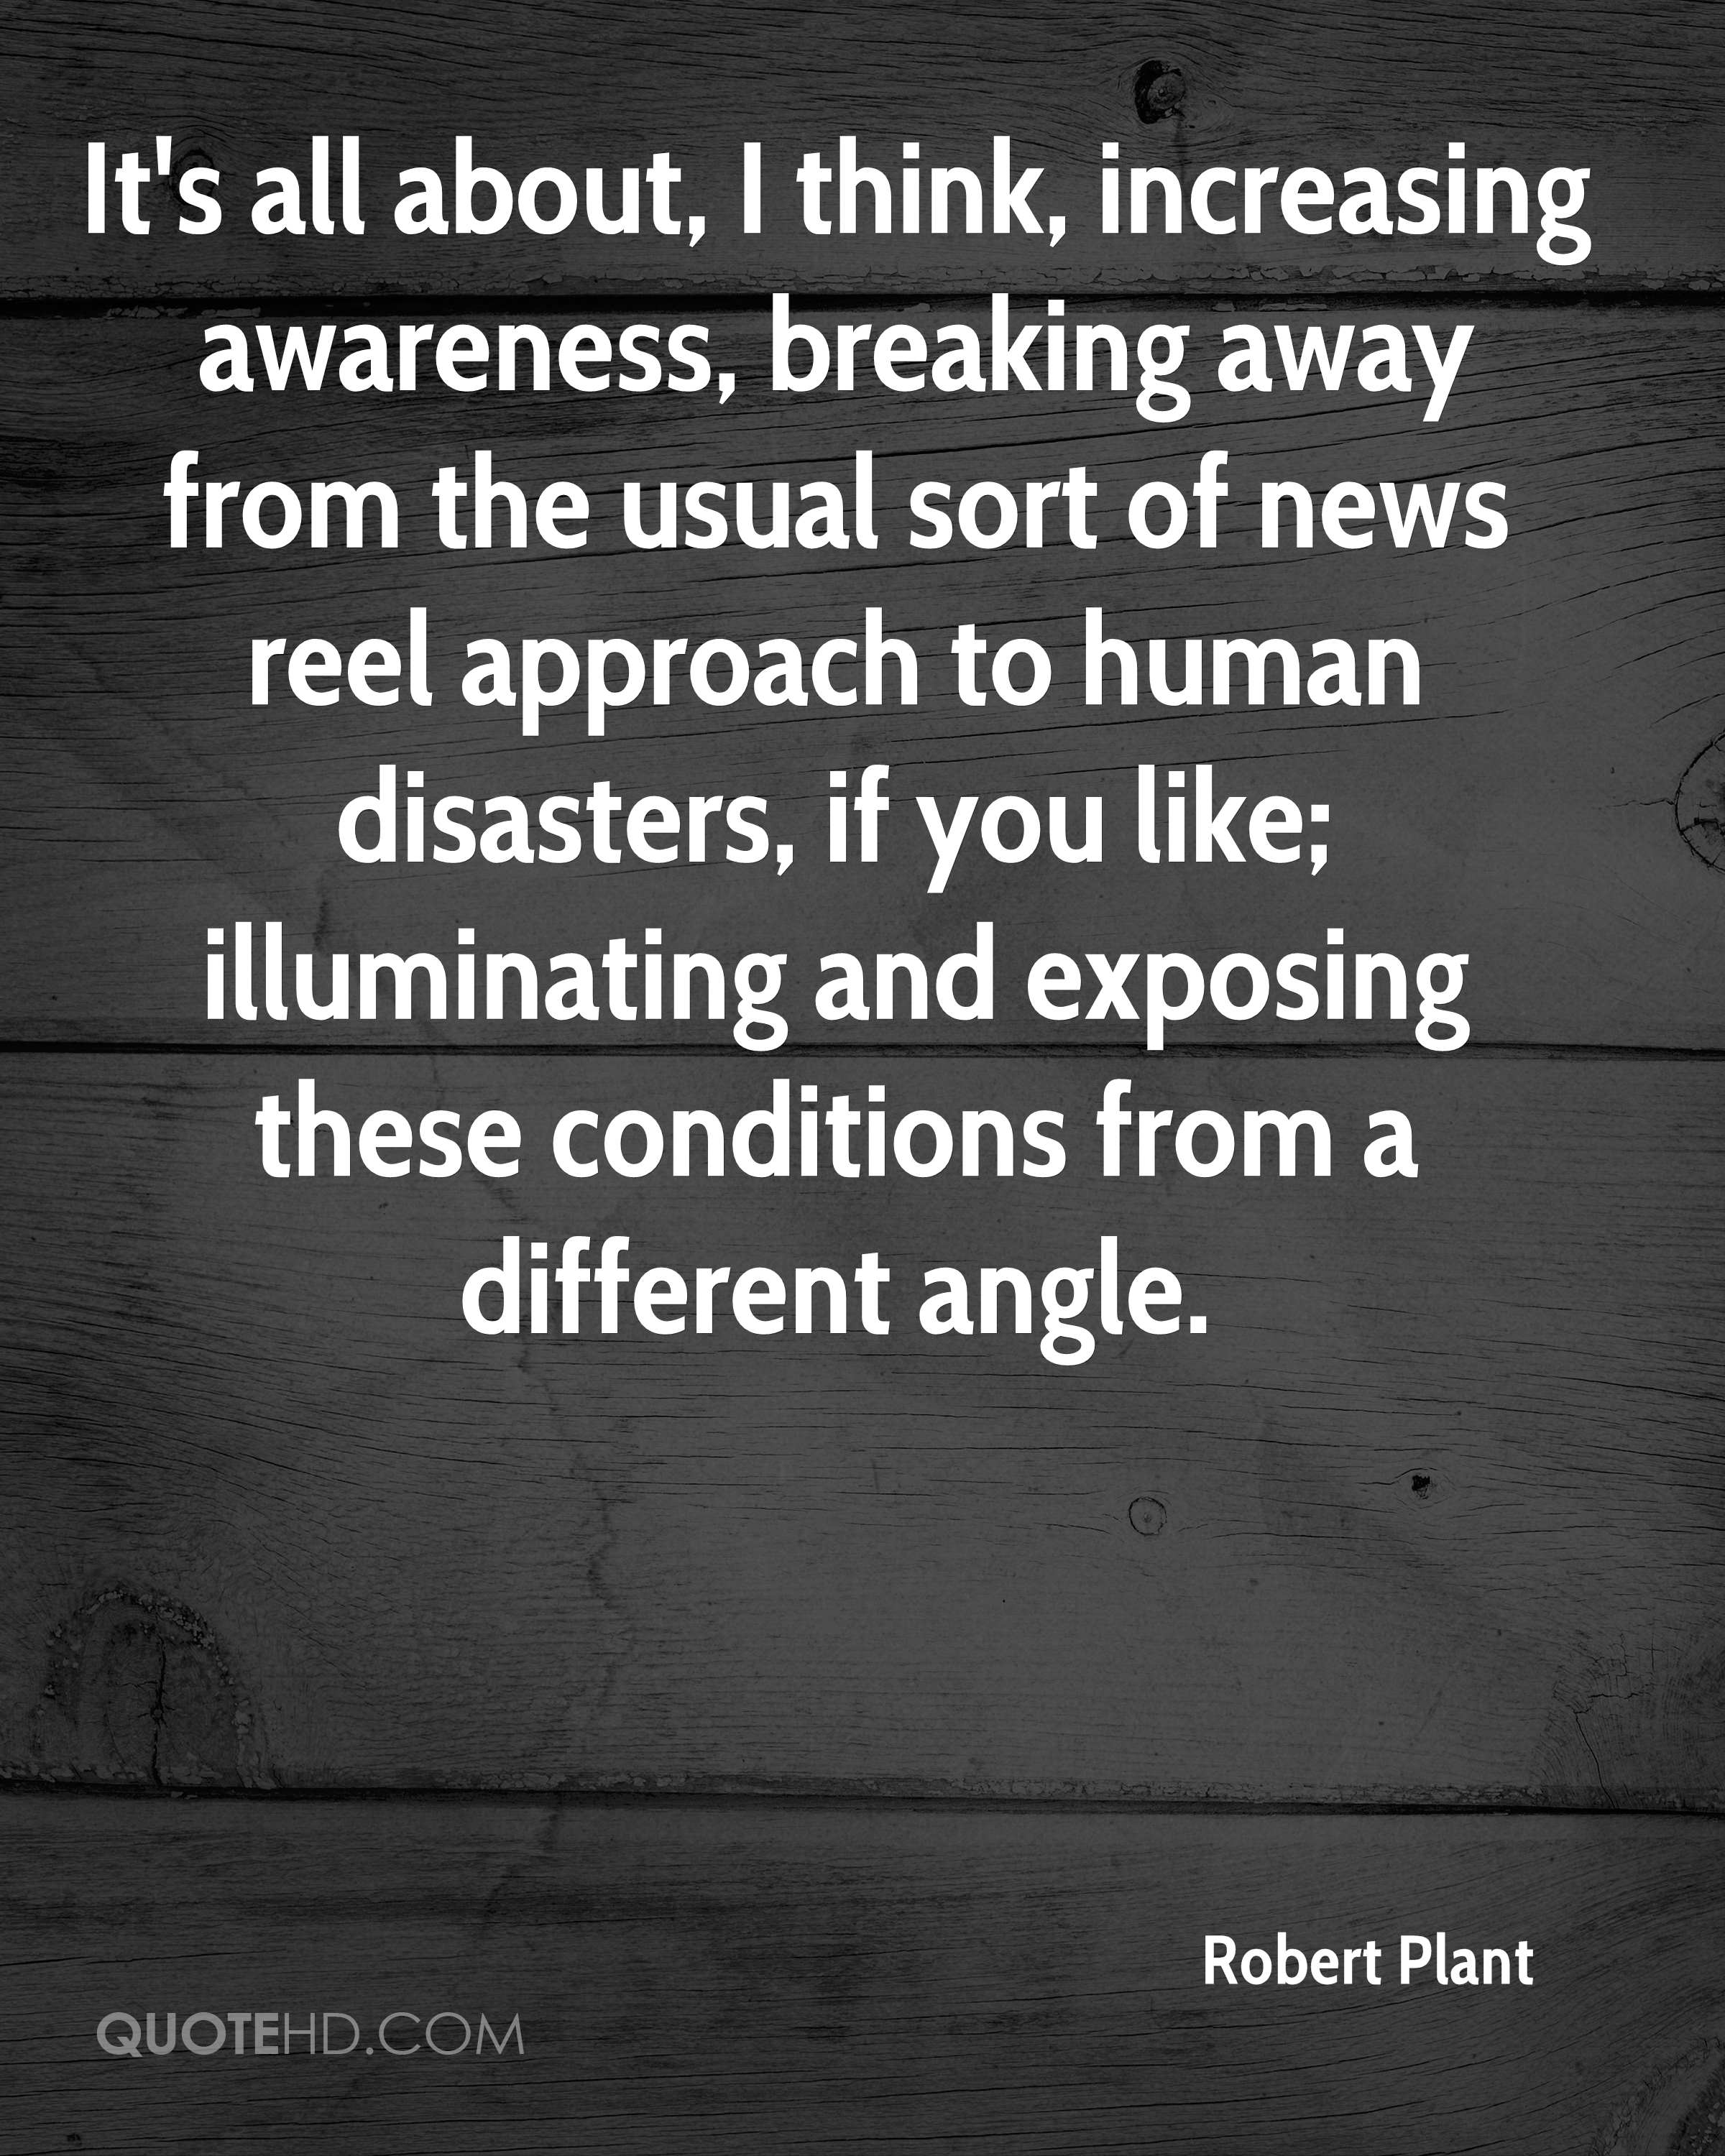 It's all about, I think, increasing awareness, breaking away from the usual sort of news reel approach to human disasters, if you like; illuminating and exposing these conditions from a different angle.